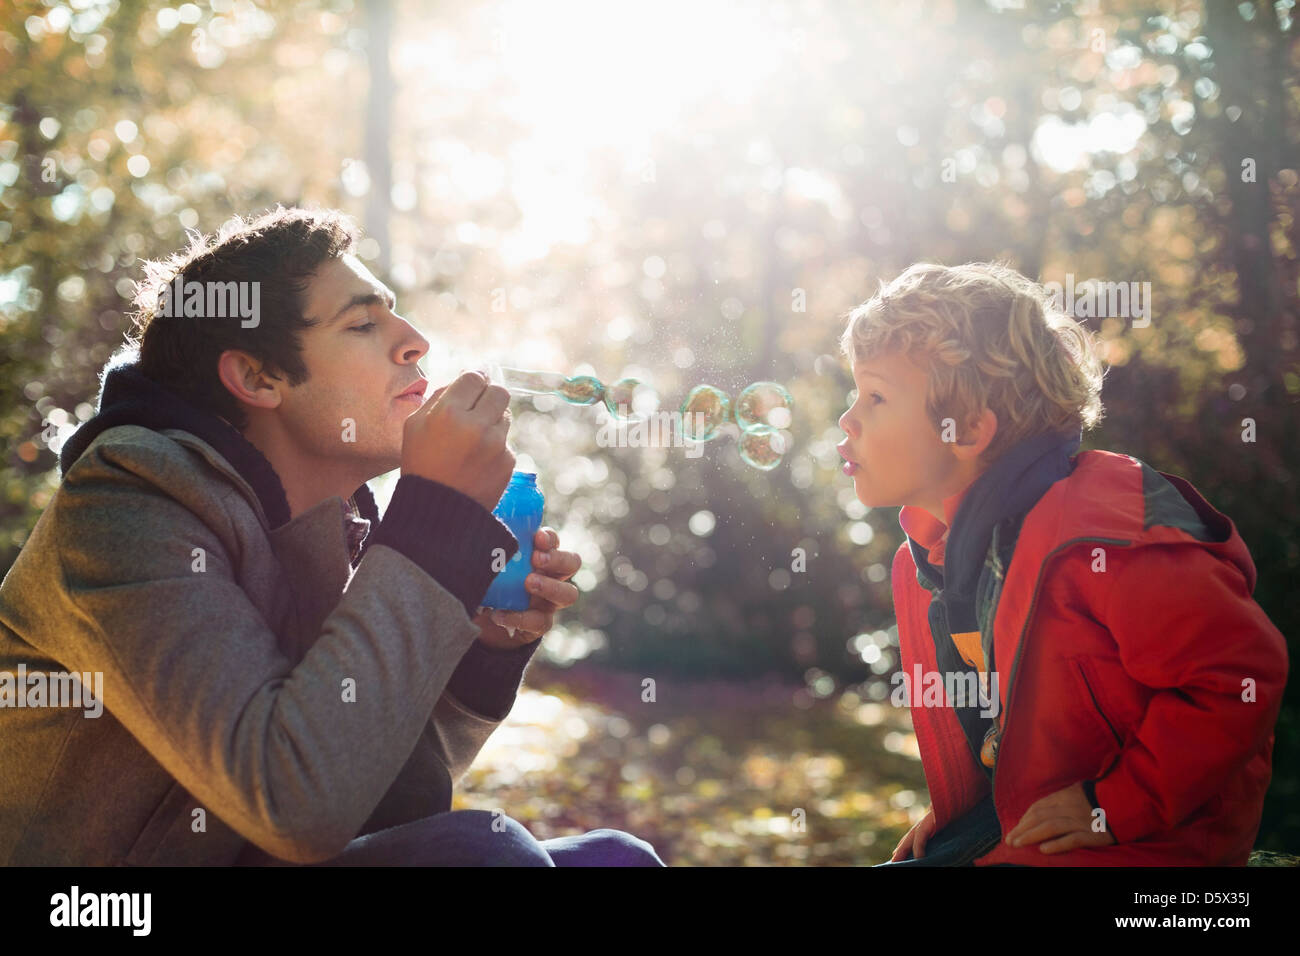 Père et fils blowing bubbles in park Photo Stock